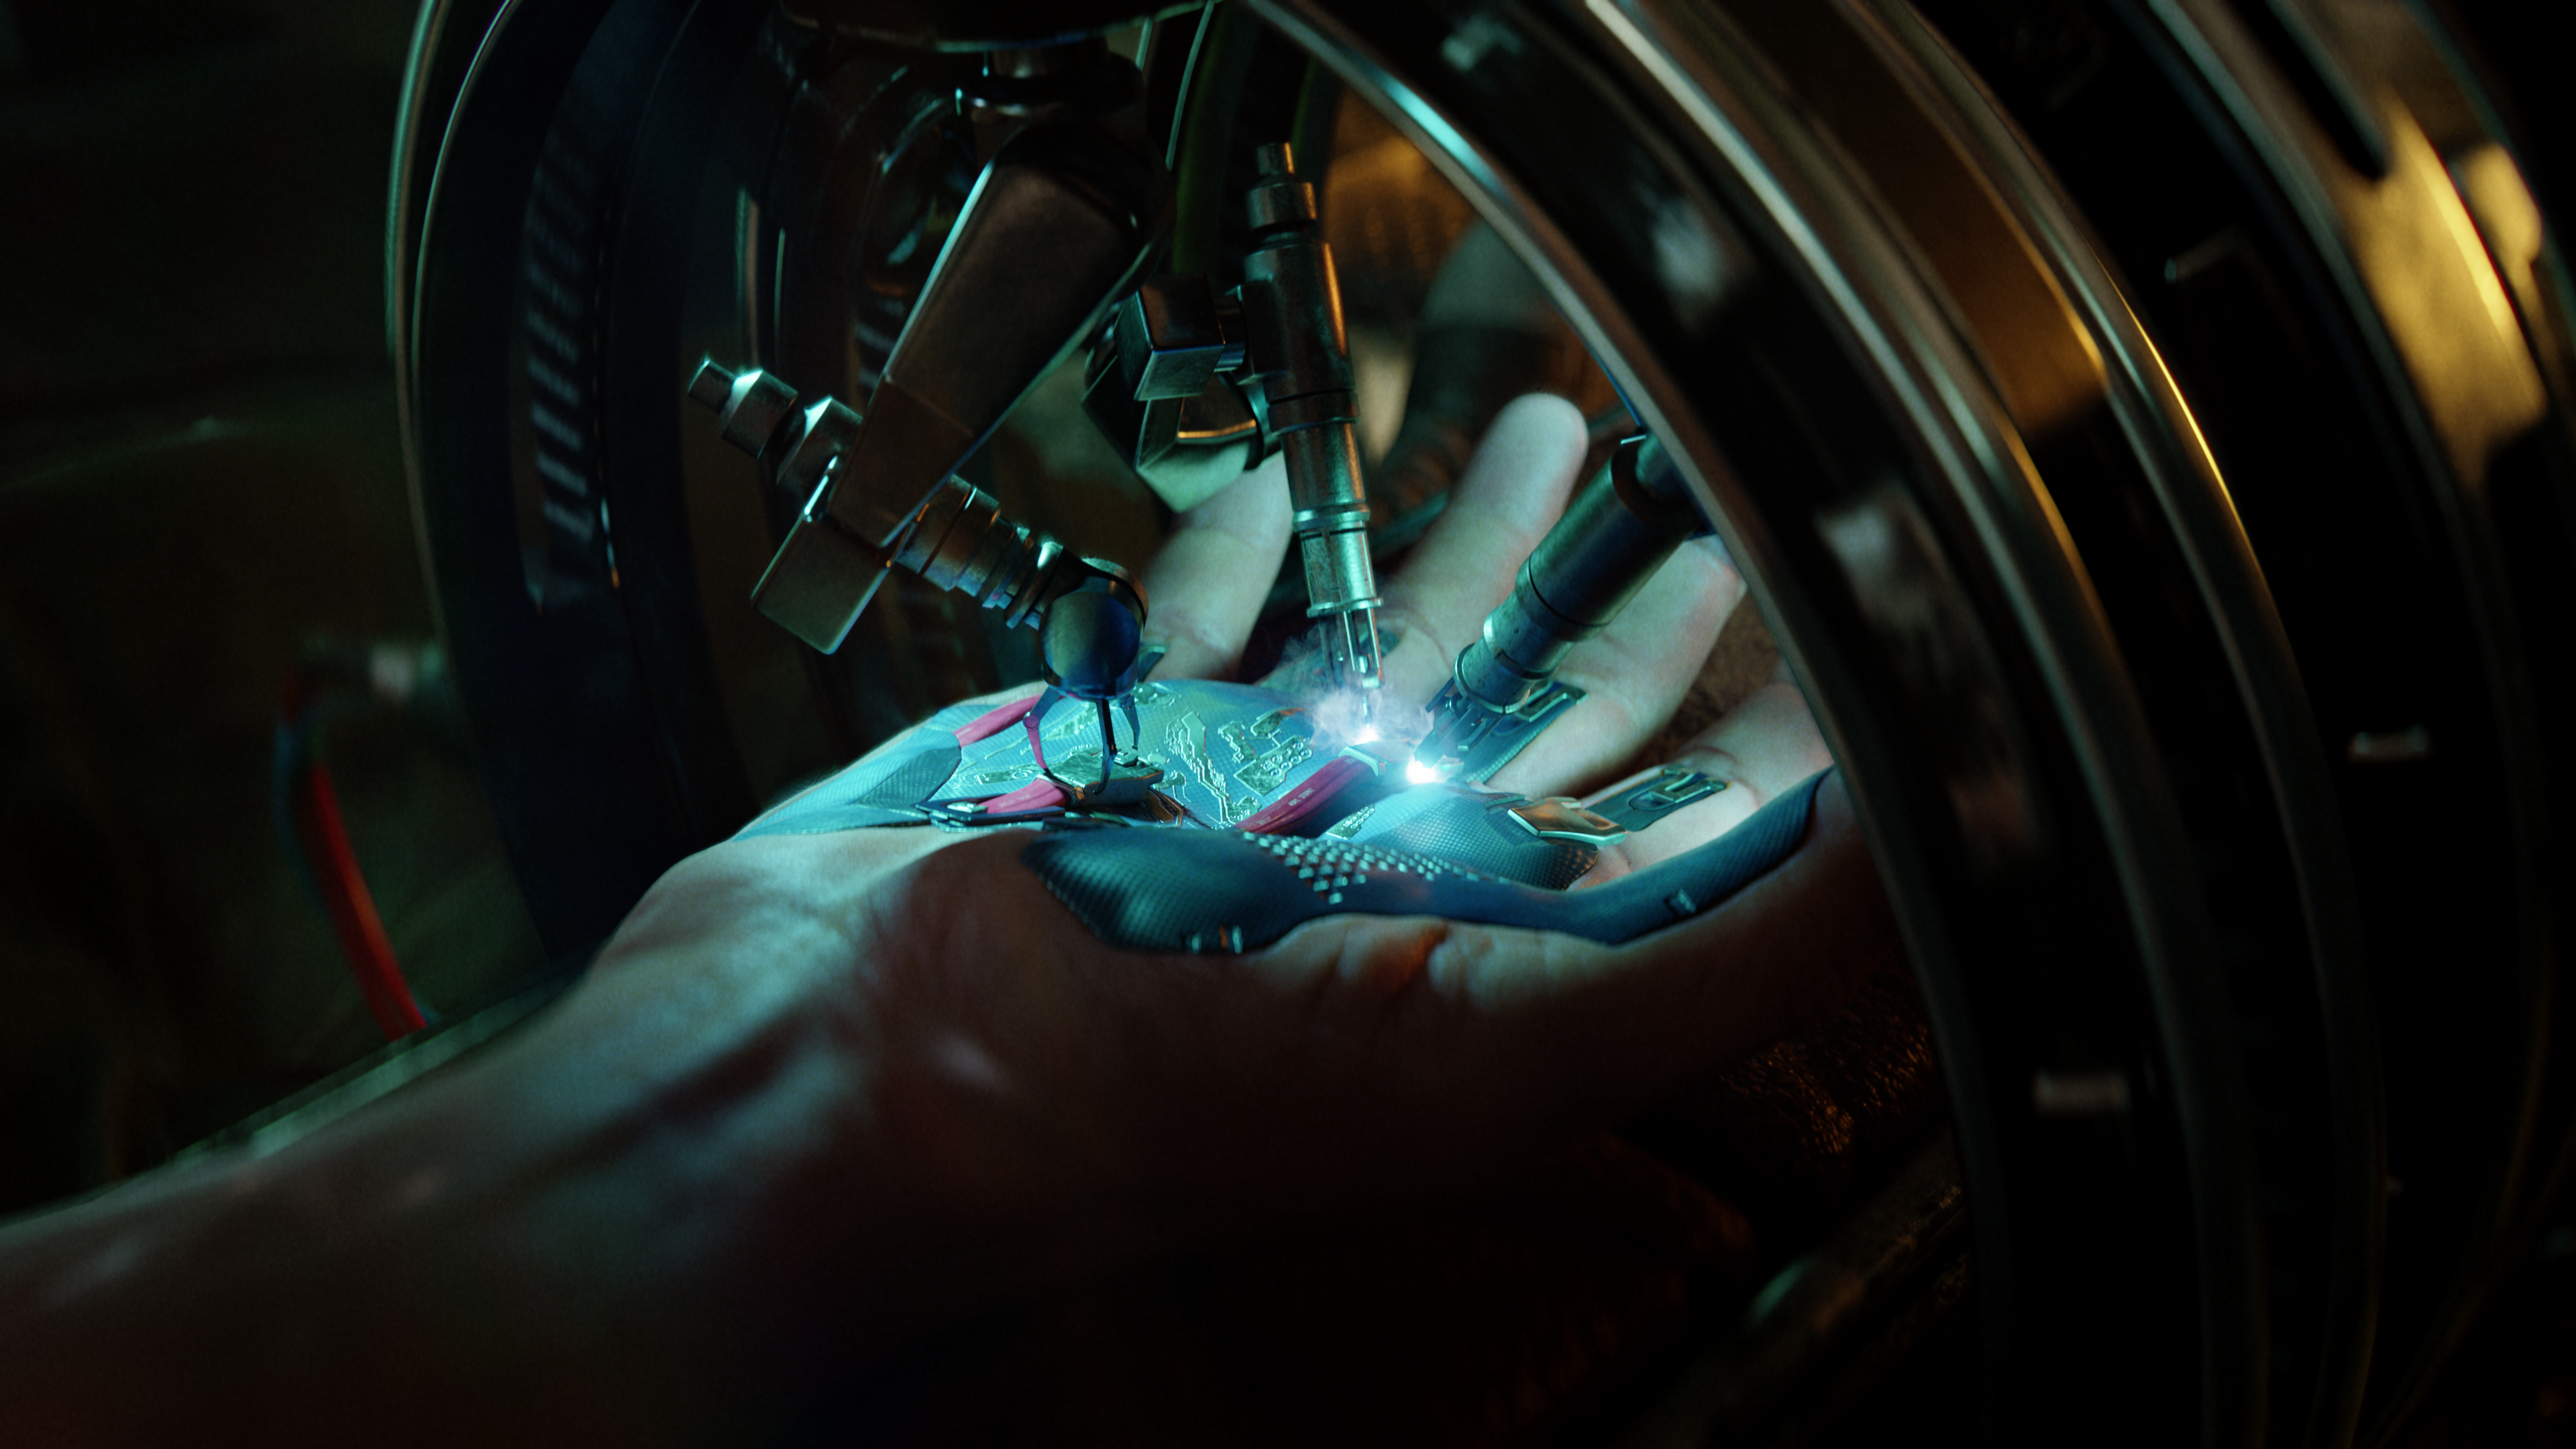 Cyberpunk 2077 key art showing a hand under a blue light being jabbed with robotic needles